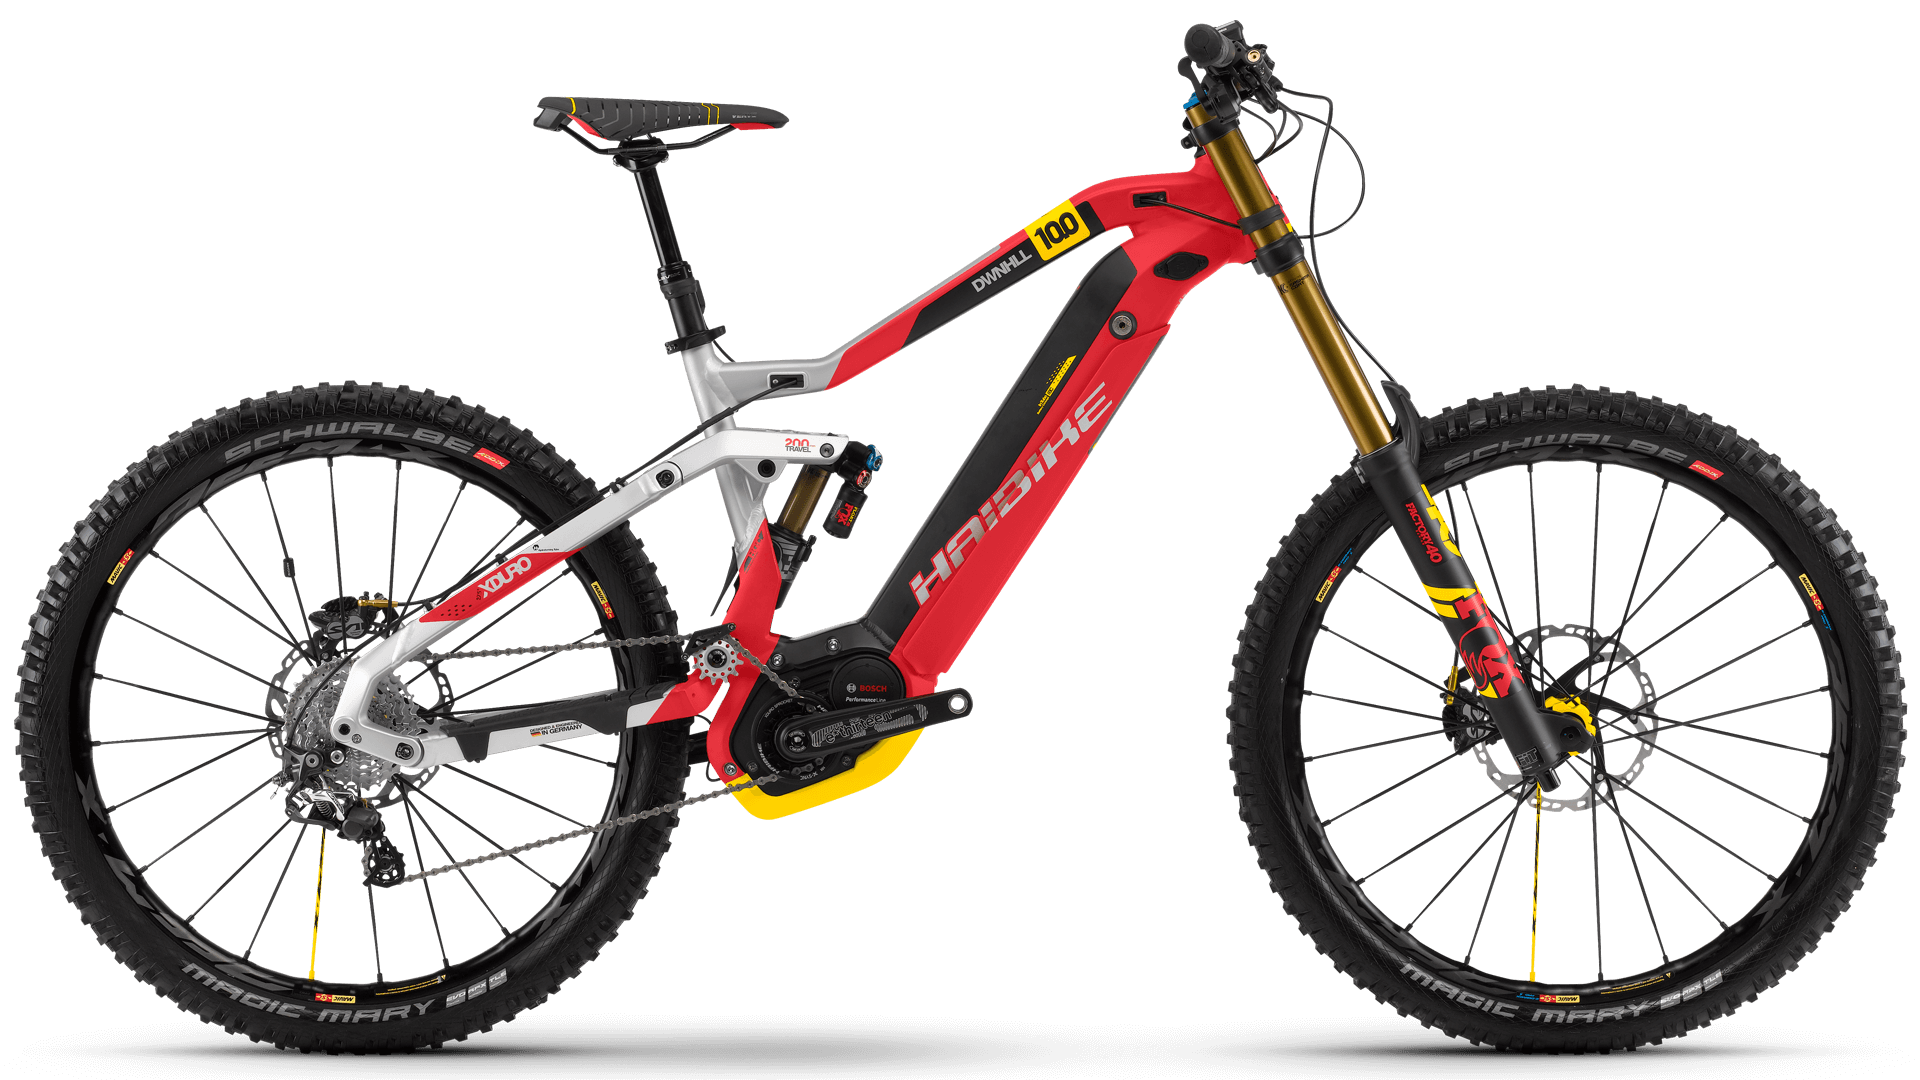 TOP E-Bike vom Lehr in Horn - Haibike - XDURO Dwnhll 10.0